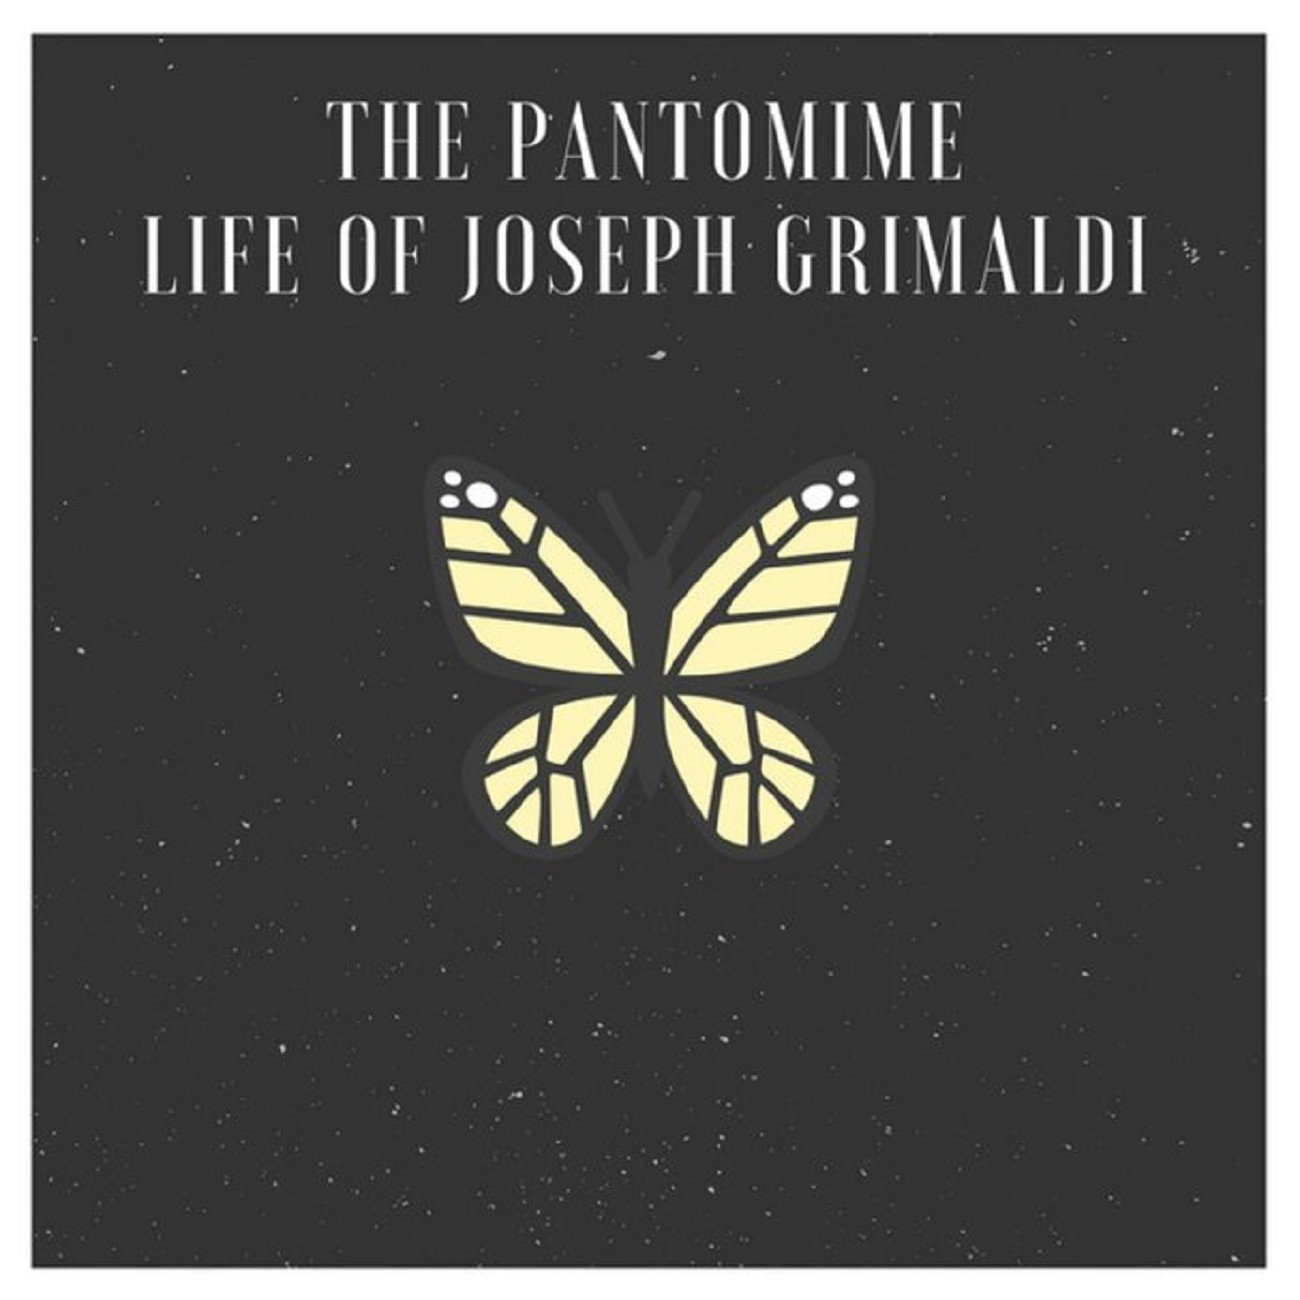 The Pantomime Life of Joseph Grimaldi